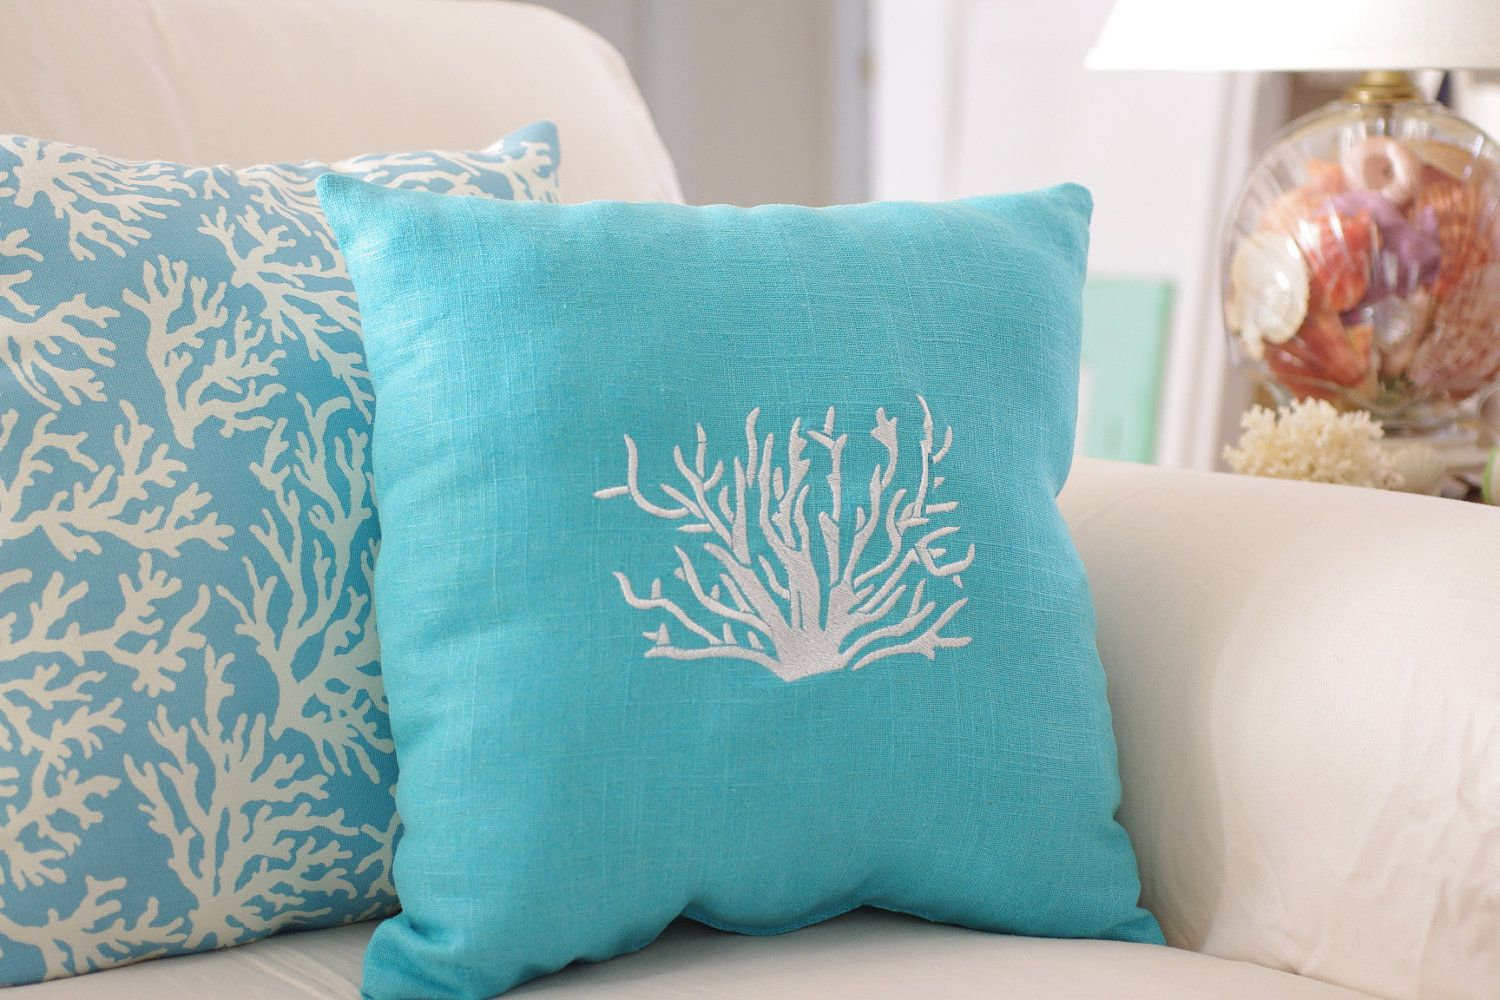 forever pillow homebrownbeachhouse pillows products housewarming beach house